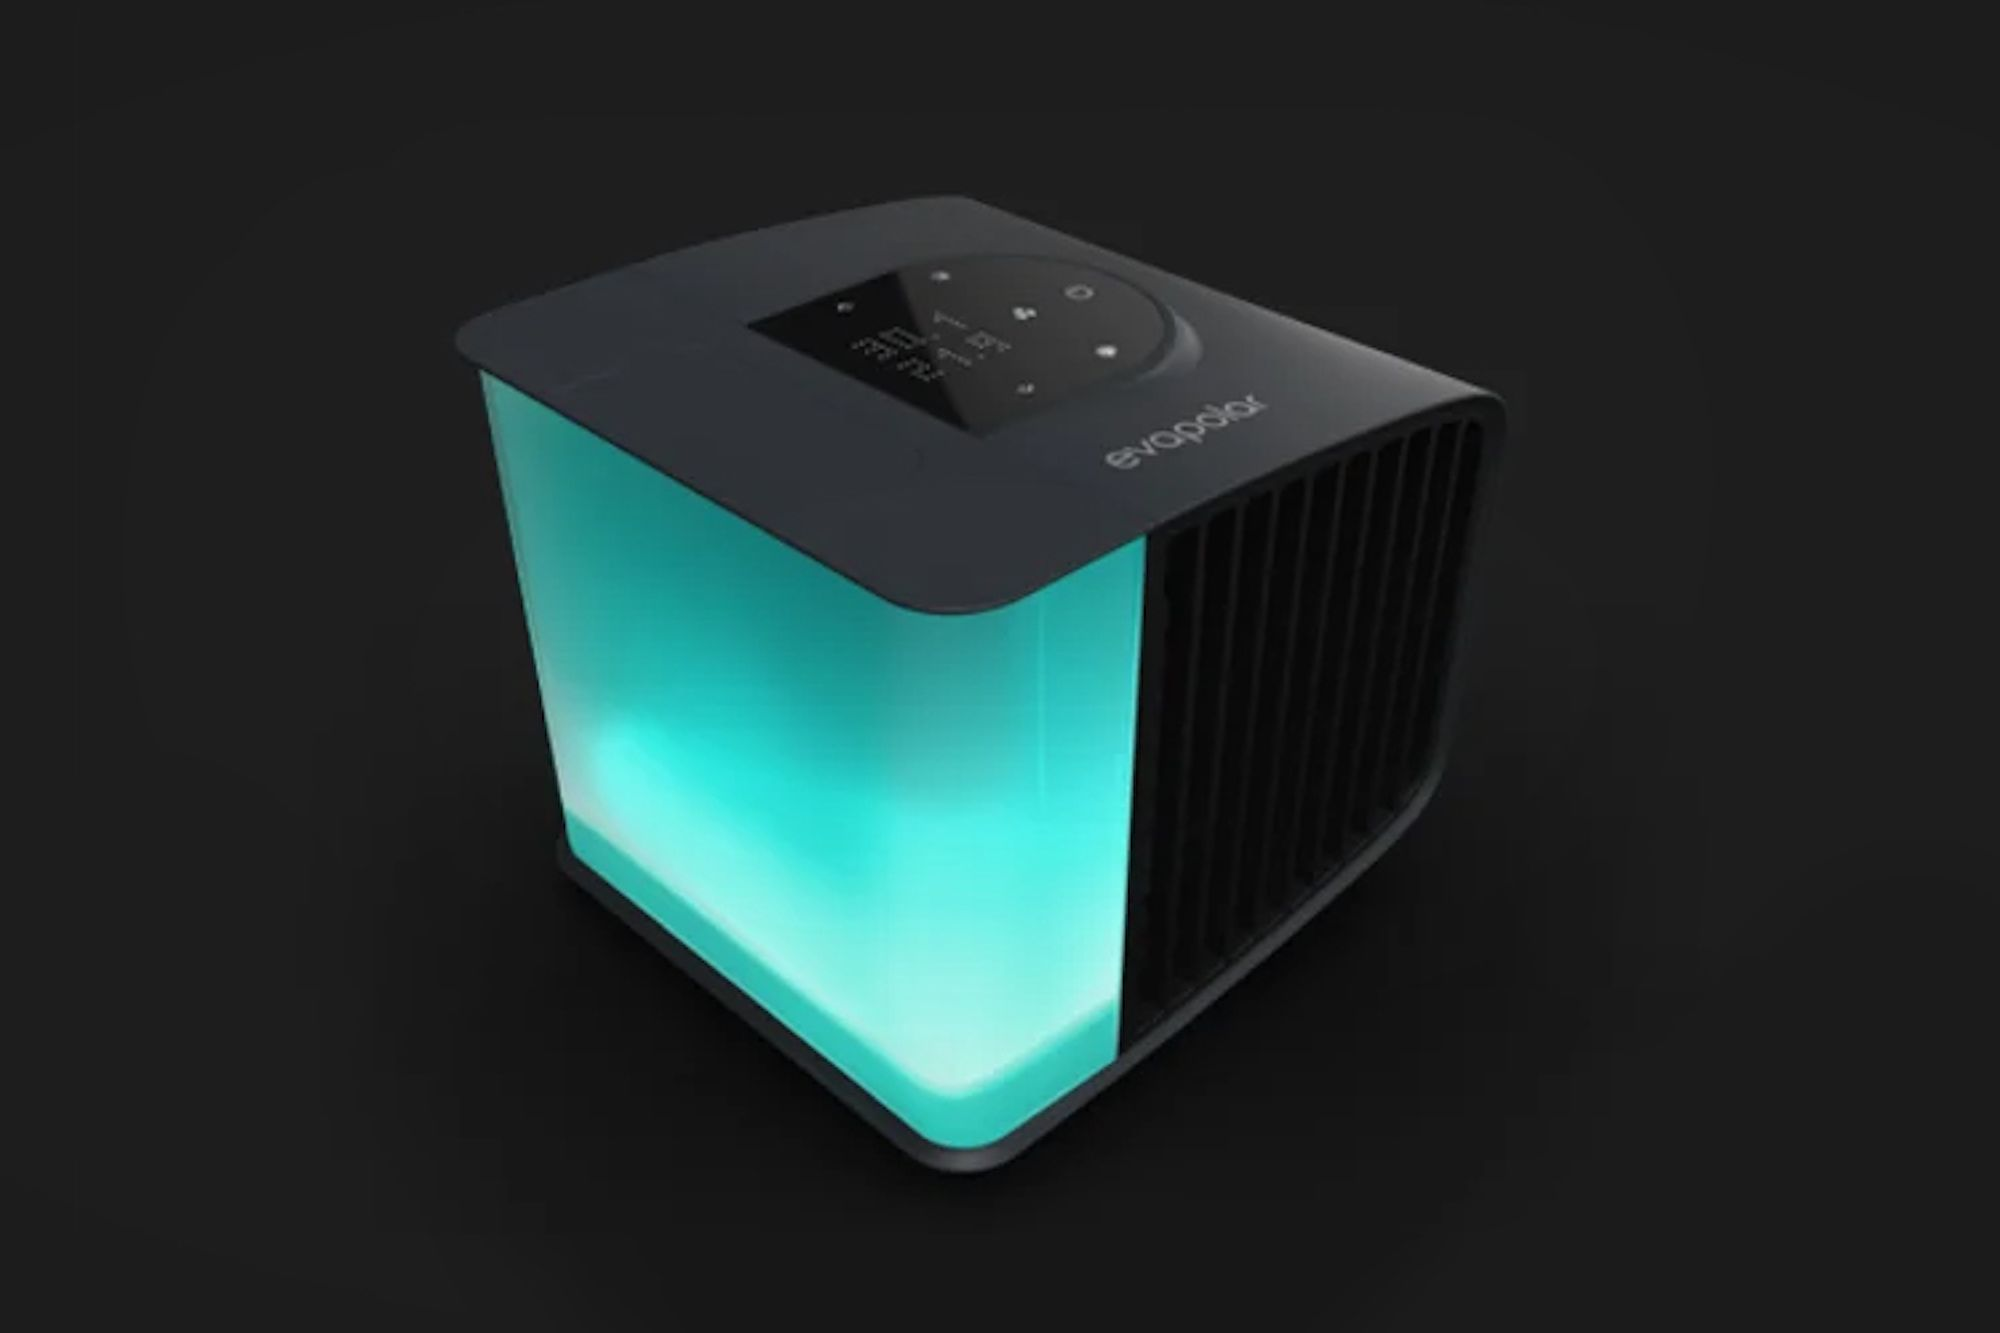 Meet the Smart A/C that is the Perfect Summer Desk Accessory